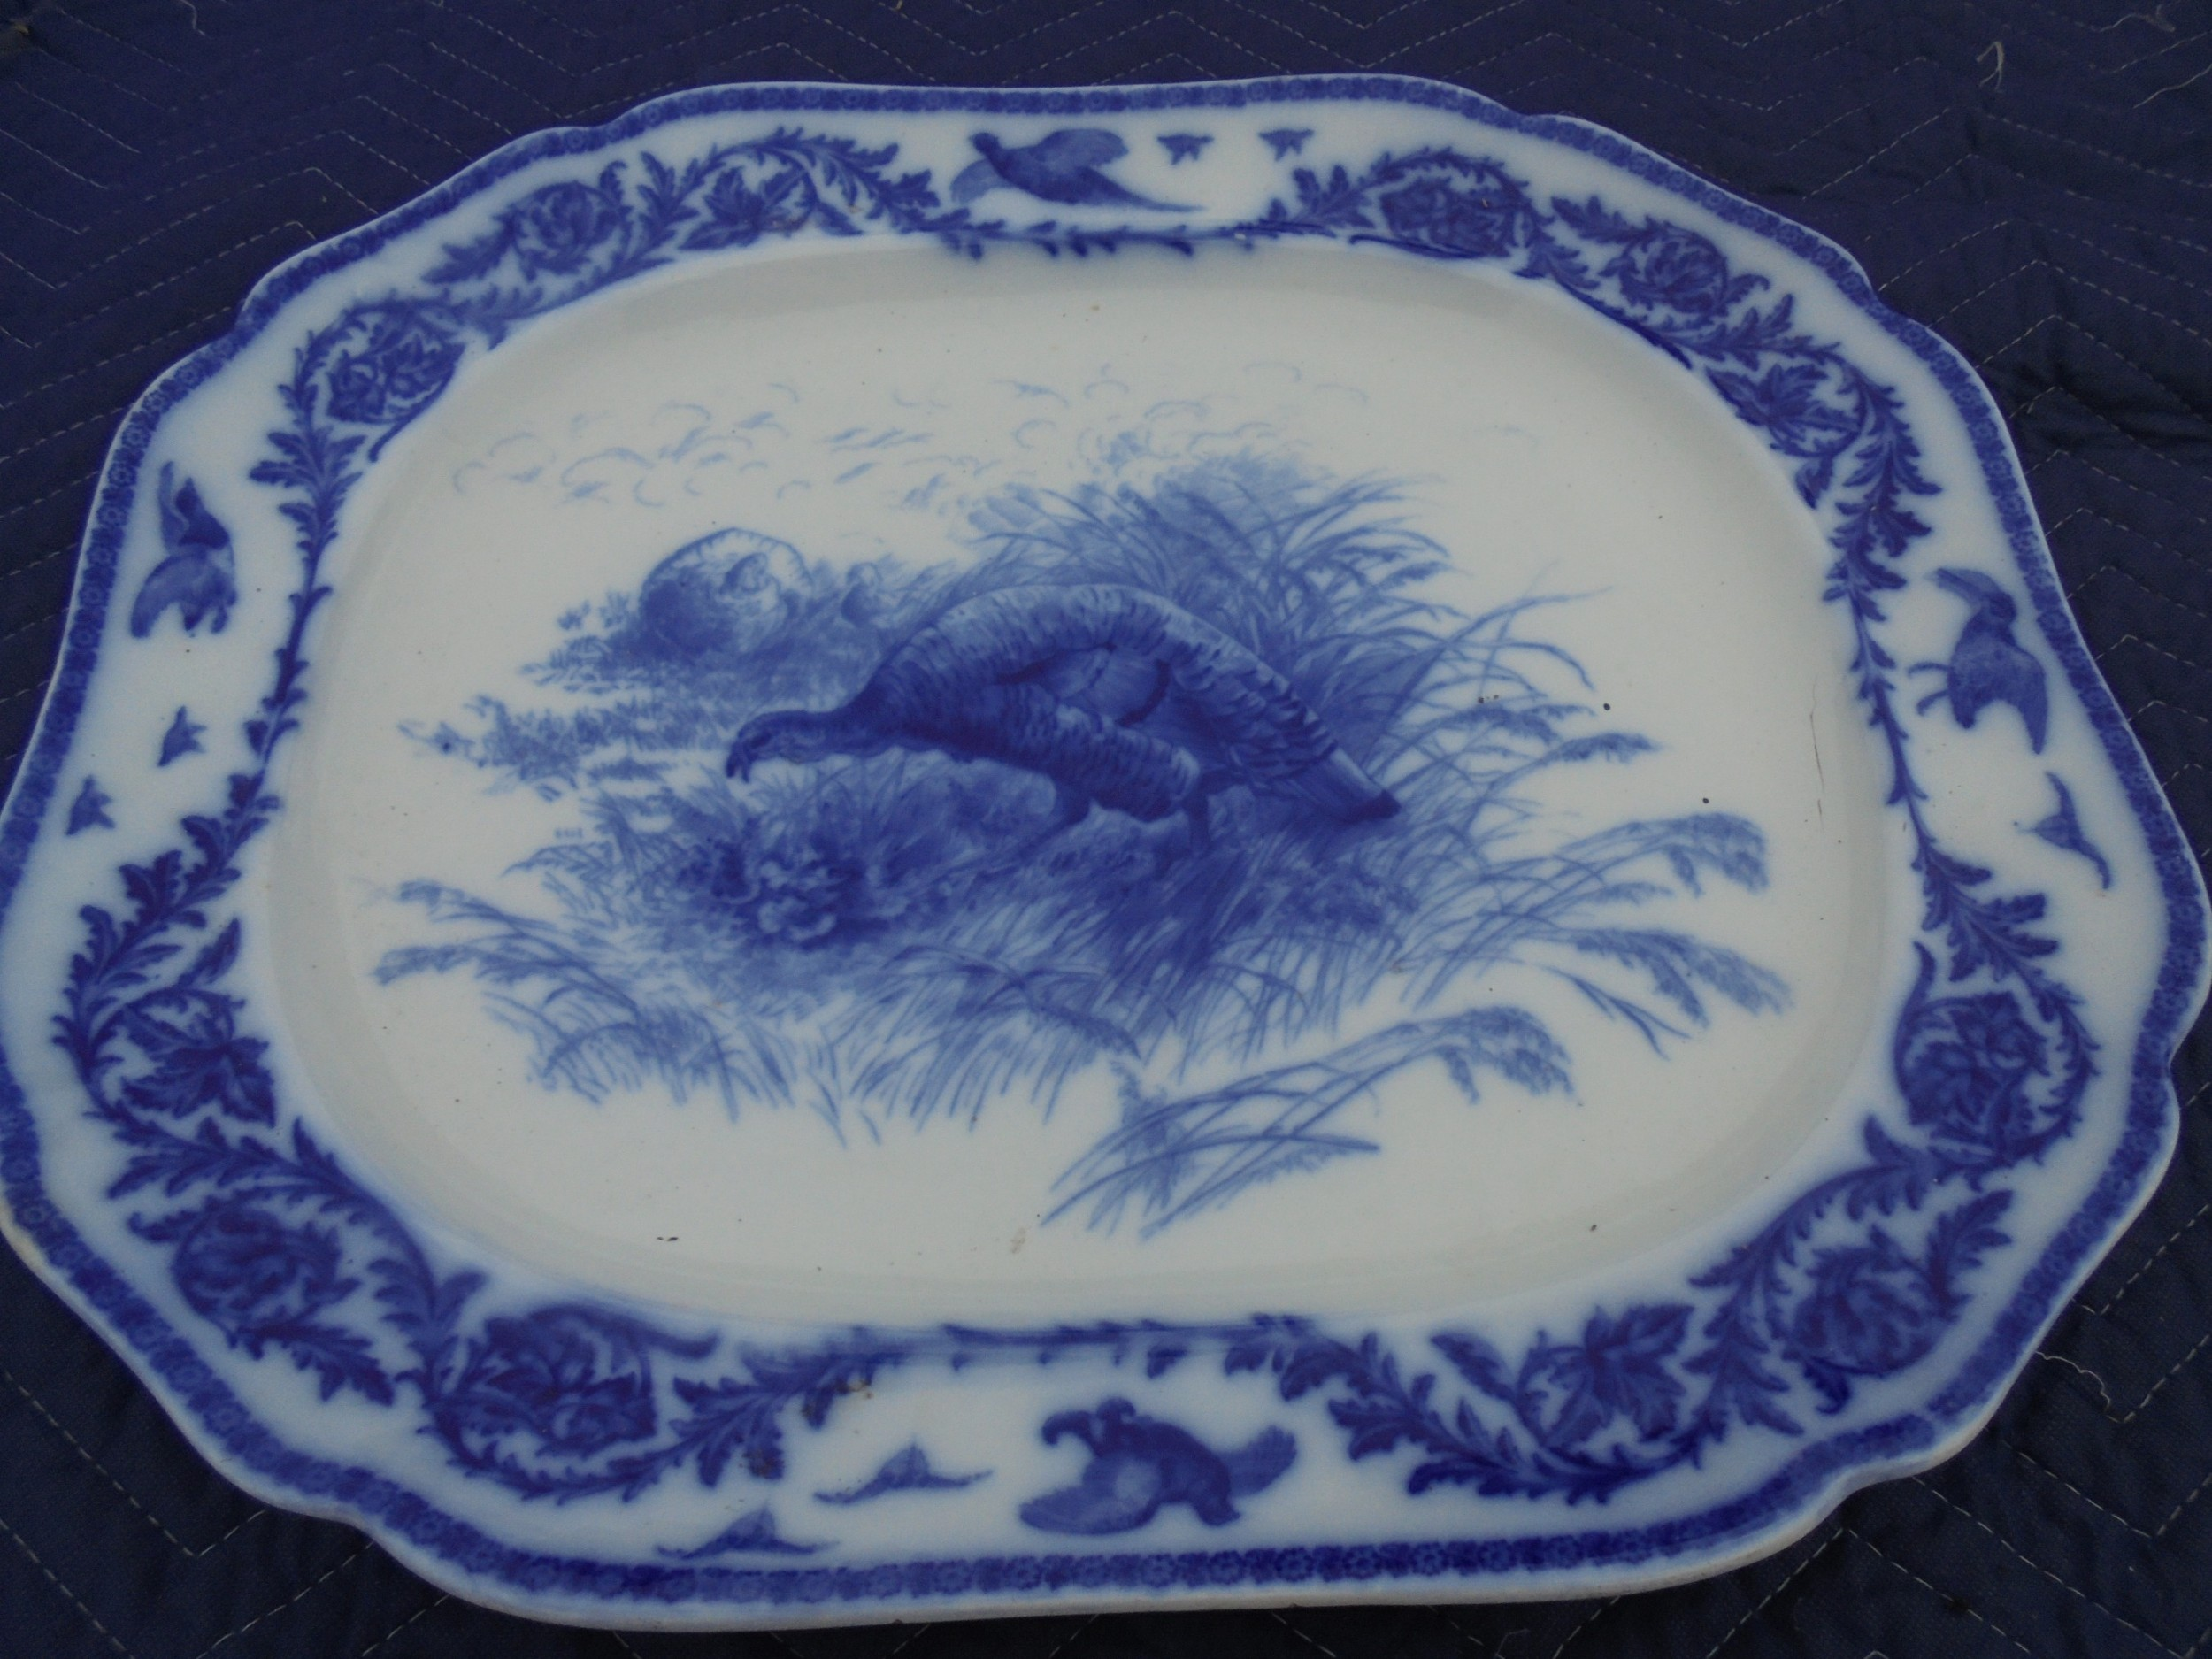 19th century turkeygame platter blue and white